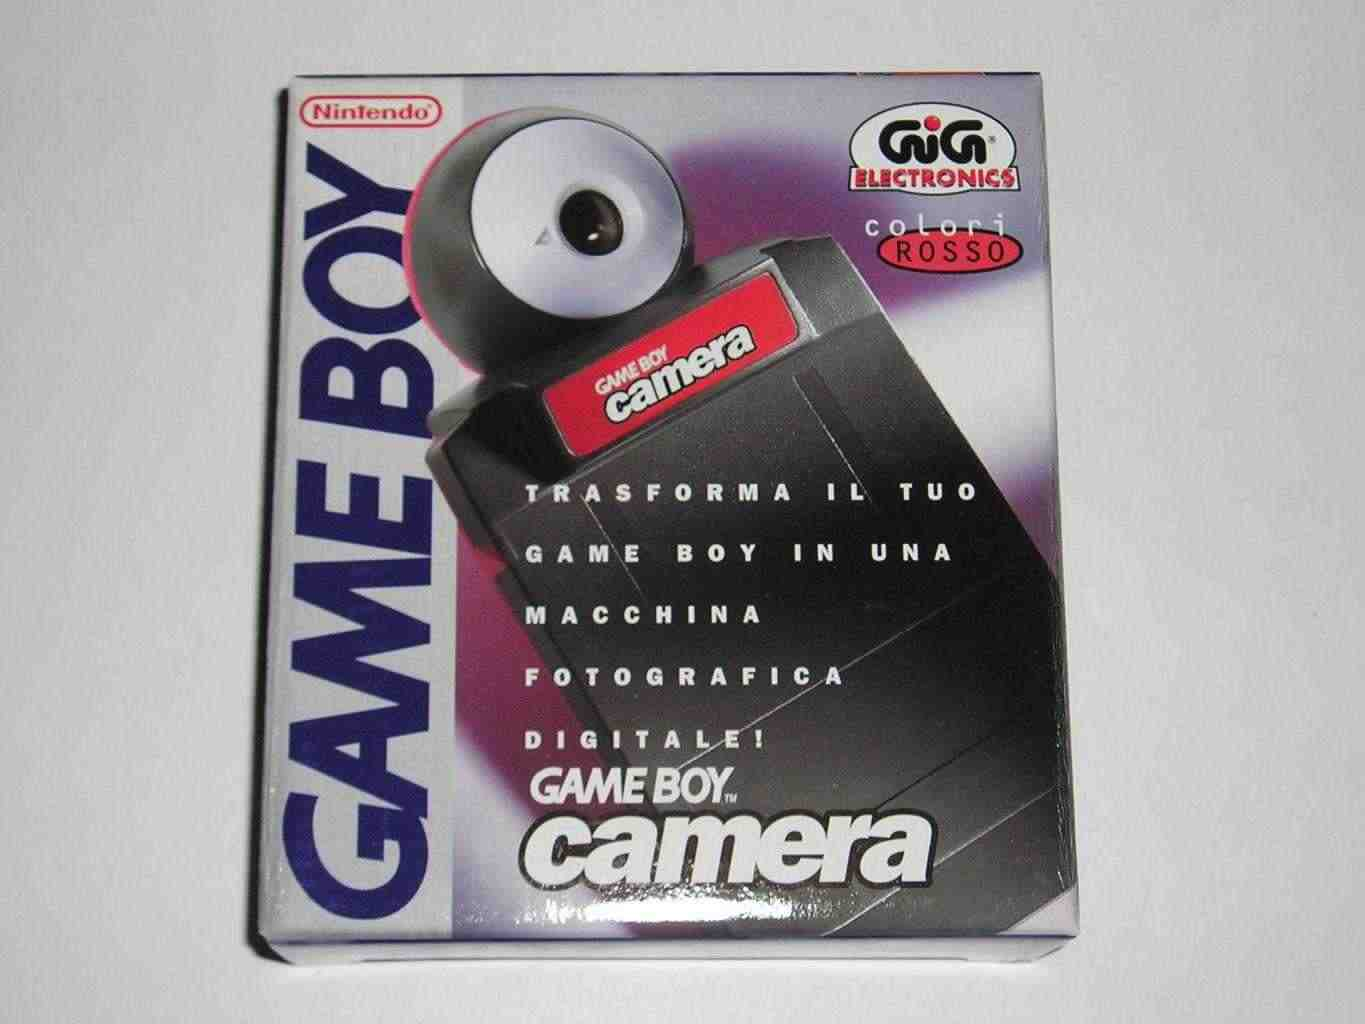 Game boy camera nintendo